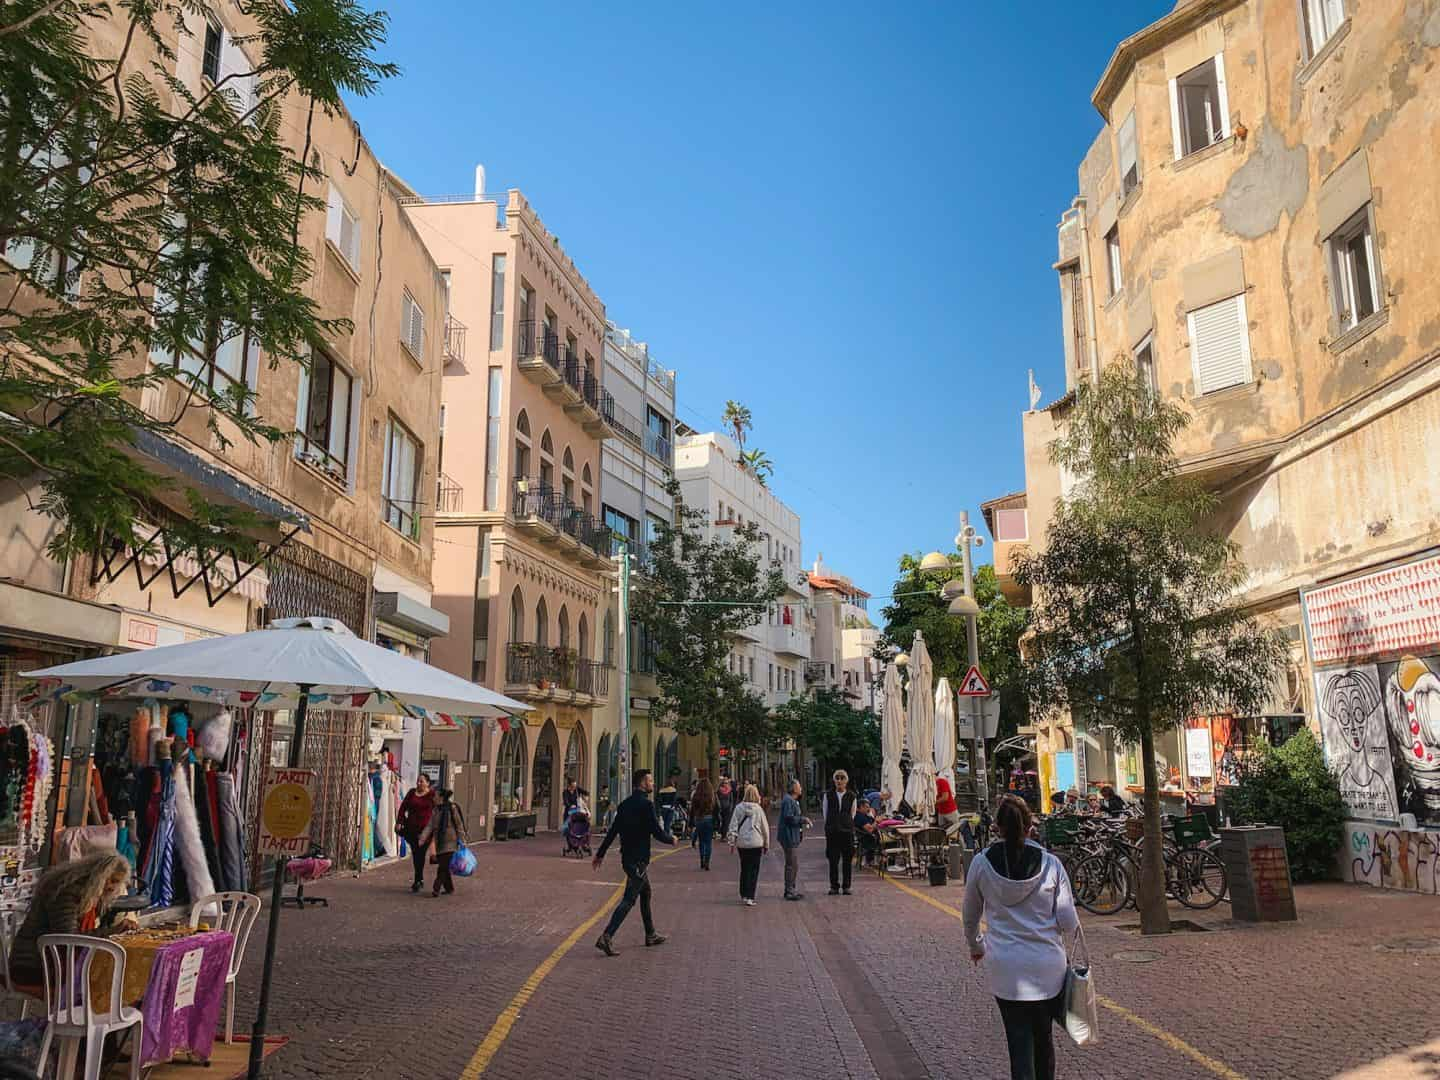 A first timer's guide to traveling to the Israel, including things to do in Tel Aviv and Jerusalem!